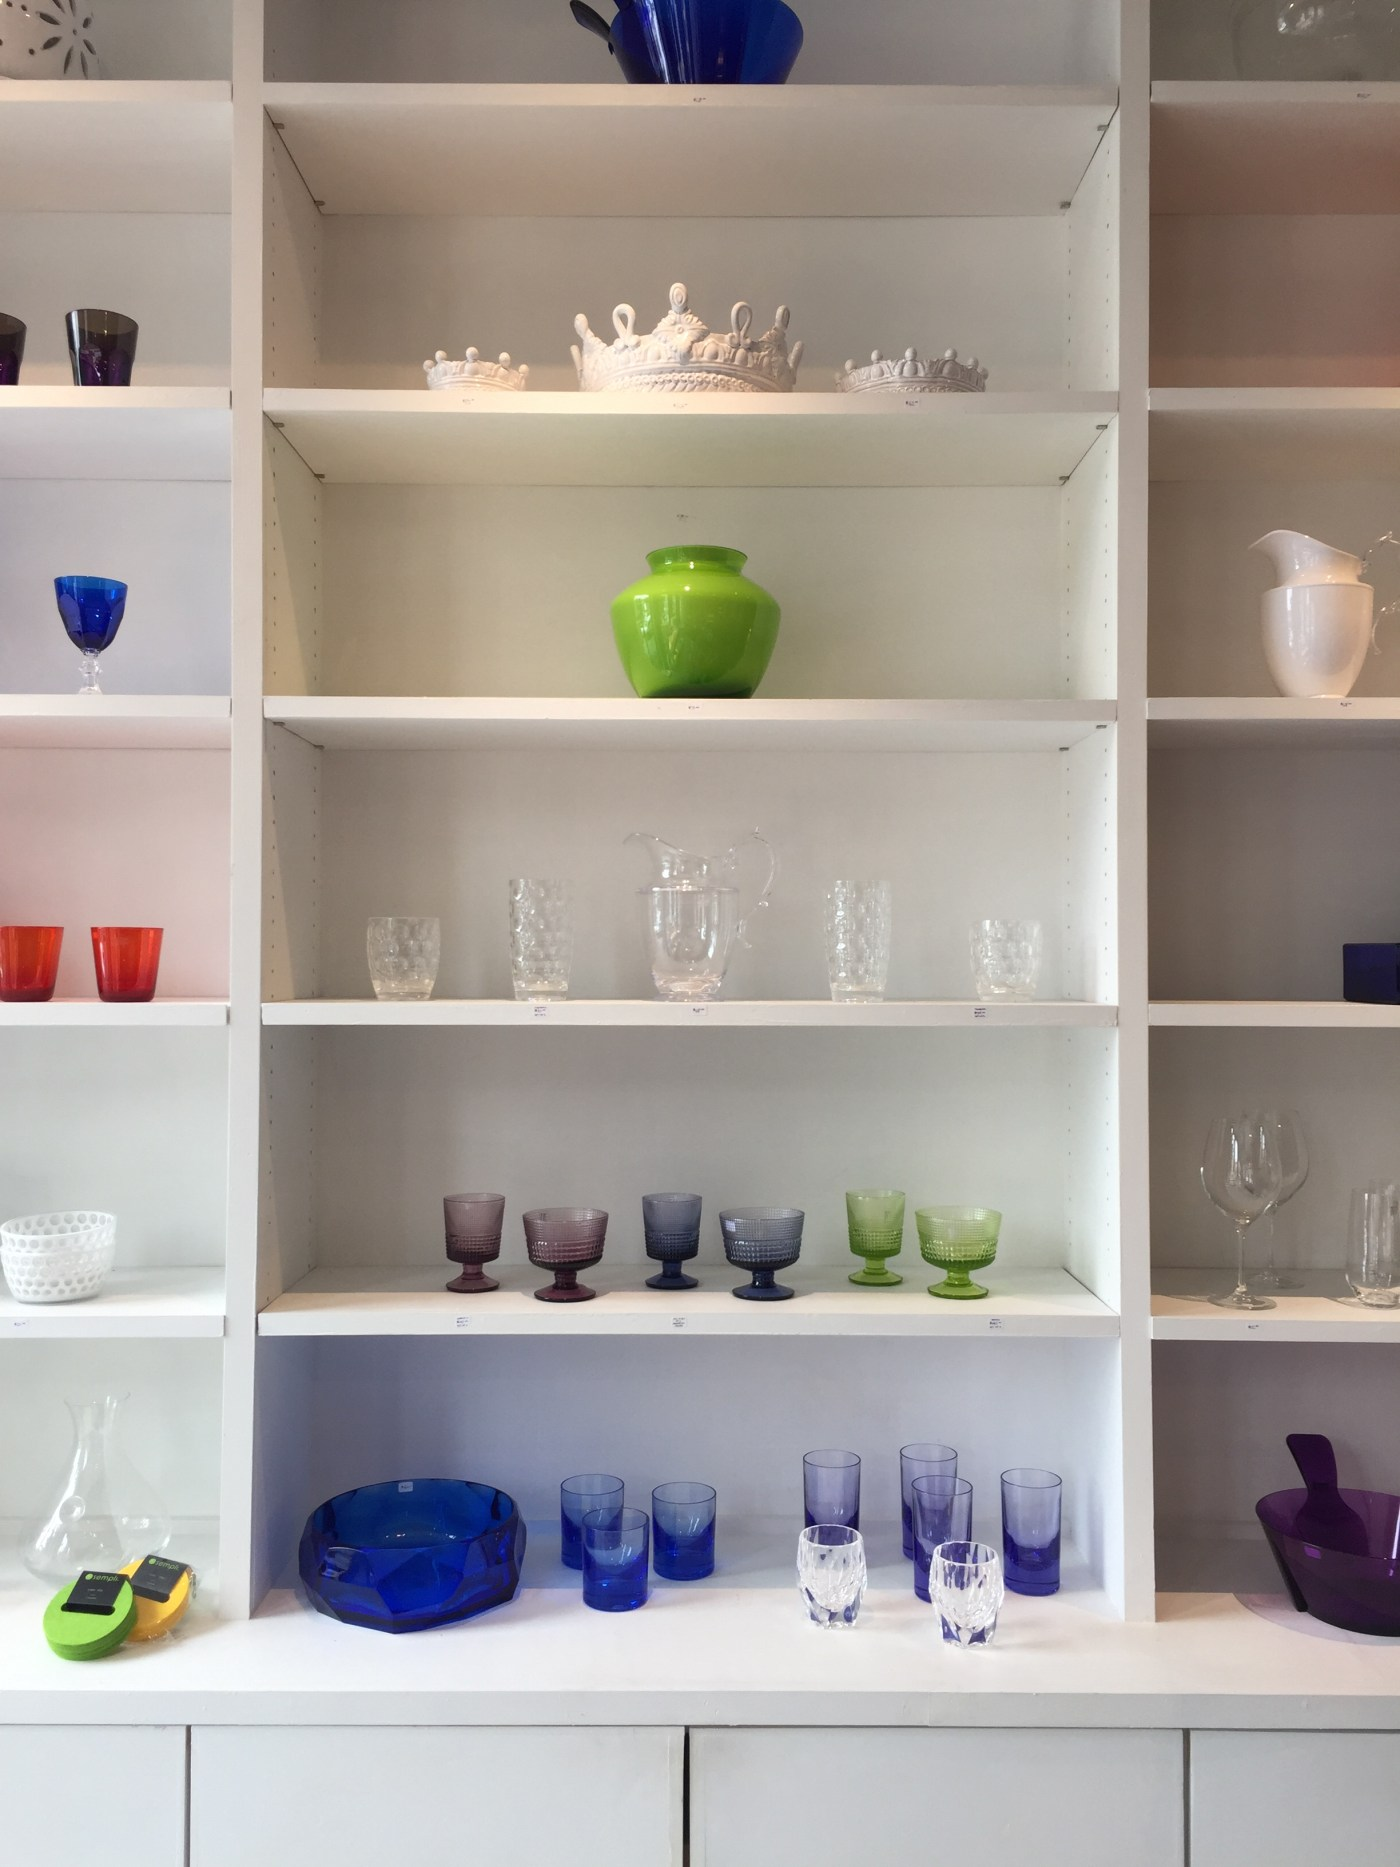 Friday Family-Friendly Find: Giardini di Sole Roberta Pitcher & St. Tropez Dinner Set | Interiors for Families